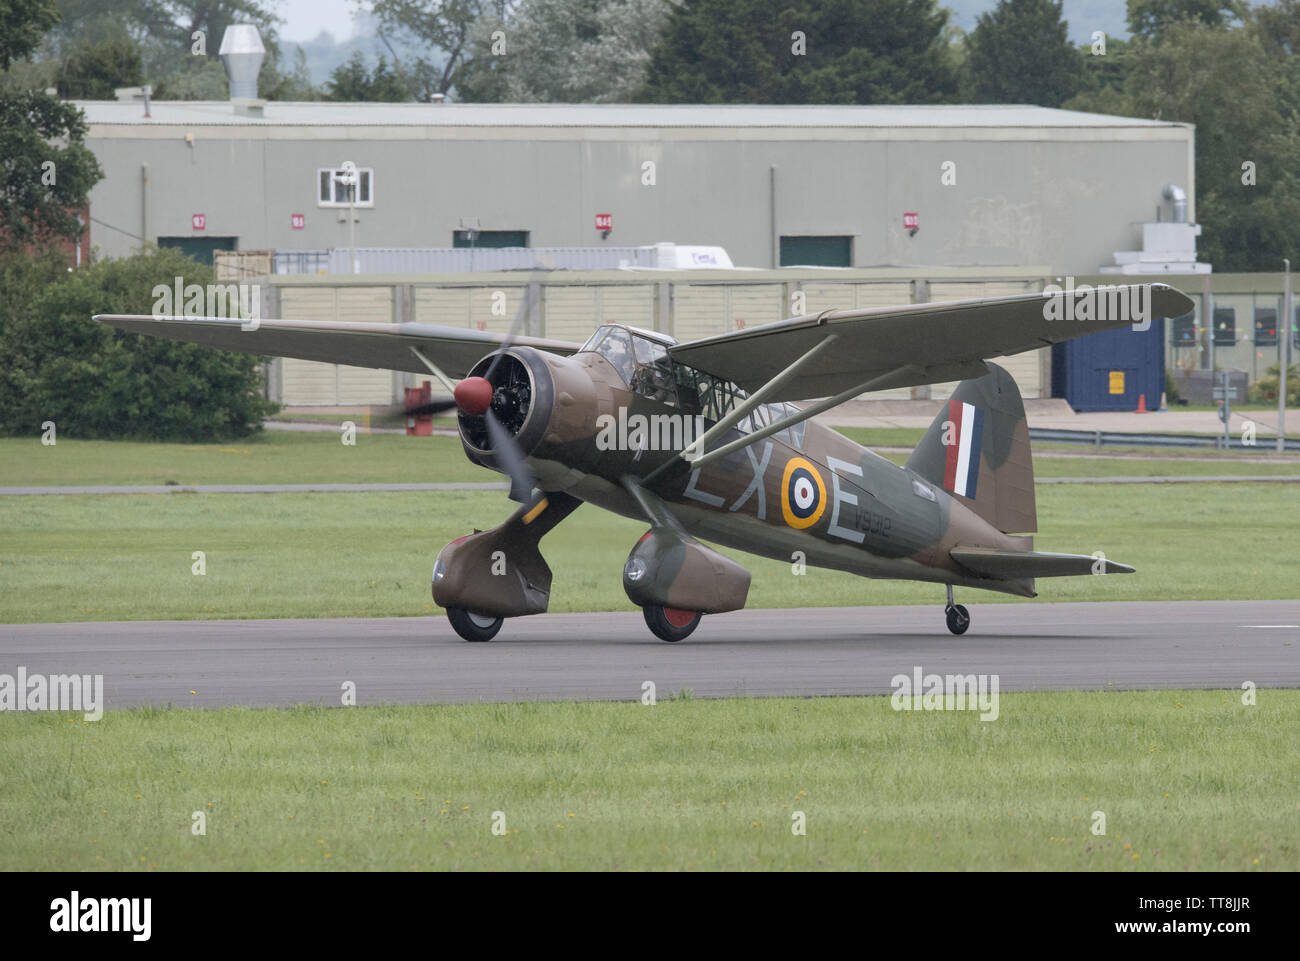 Dunsfold Park, Cranleigh, Surrey, UK. 15th June 2019. 15th and final Dunsfold Wings and Wheels features dynamic air and motoring displays, running from 15th-16th June. The historic WW2 airfield closes shortly to be demolished for new housing. Image: A WW2 Westland Lysander performs at the airshow, co-incidentally this was the first type of aircraft ever to land at Dunsfold Aerodrome. Credit: Malcolm Park/Alamy Live News. - Stock Image